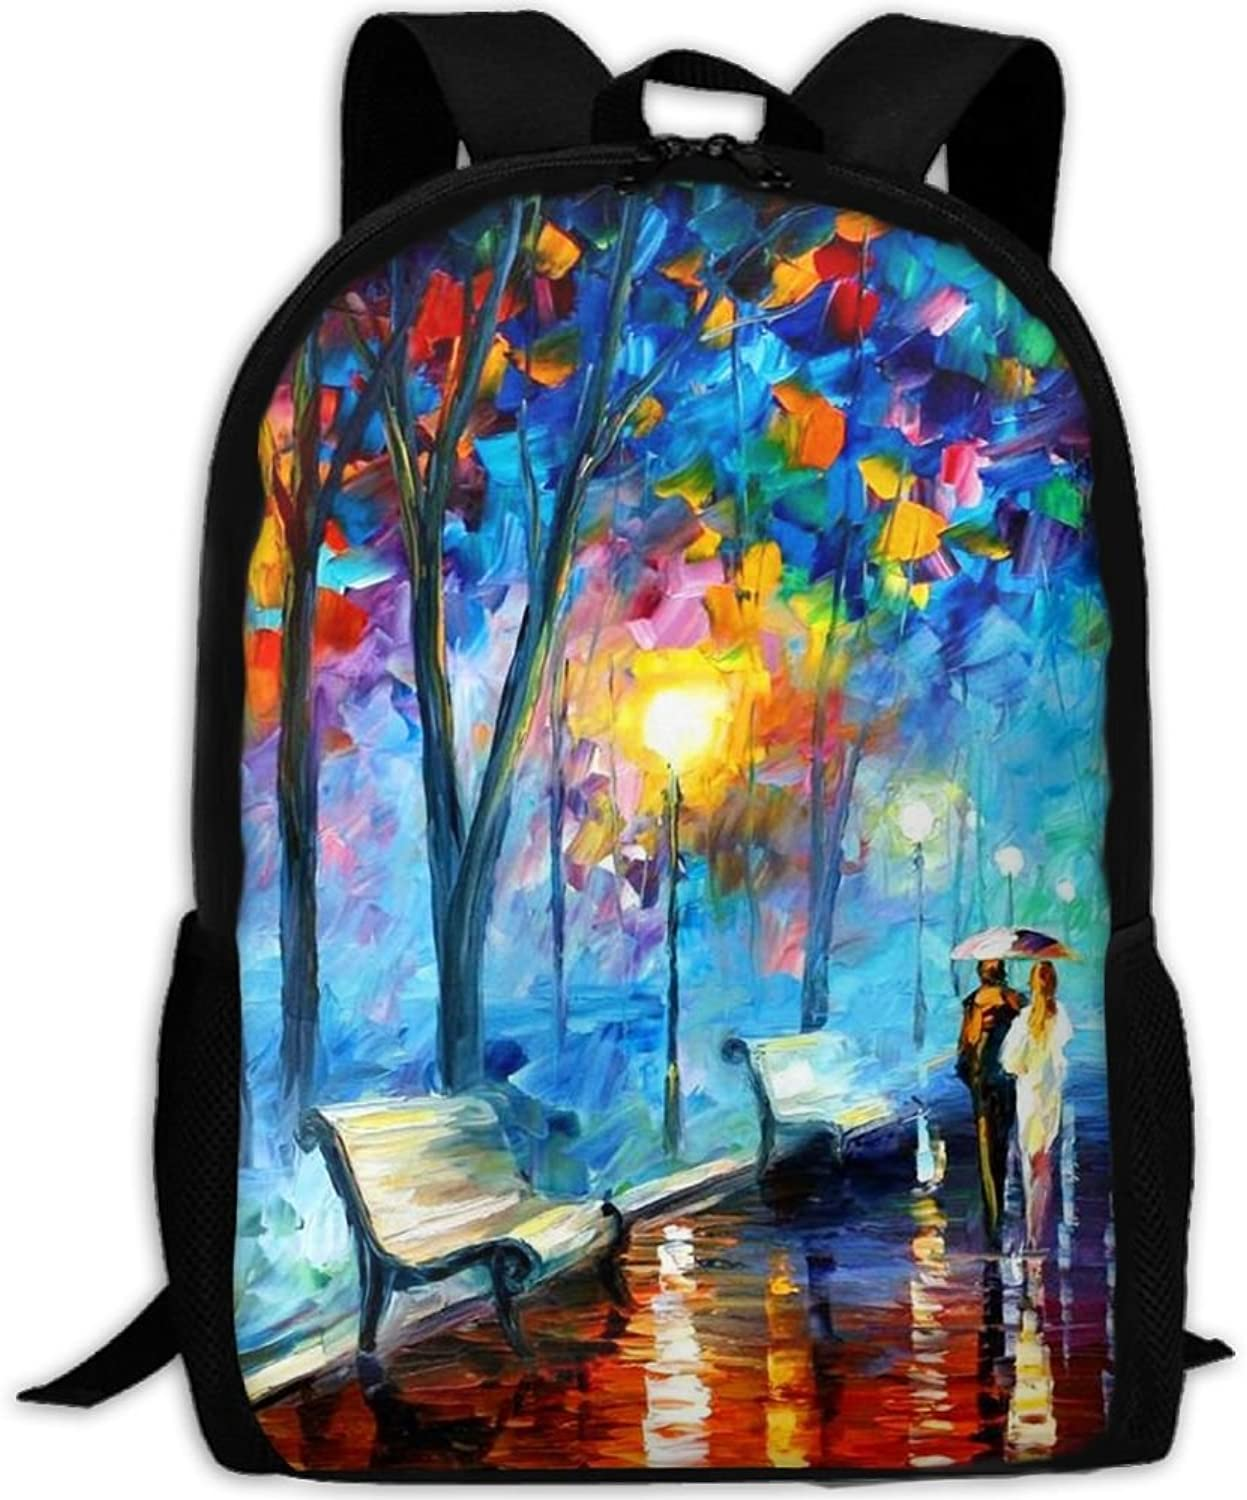 a12009c6543e Backpack Laptop Travel School Bags A Romantic Walk Daypack Shoulder ...